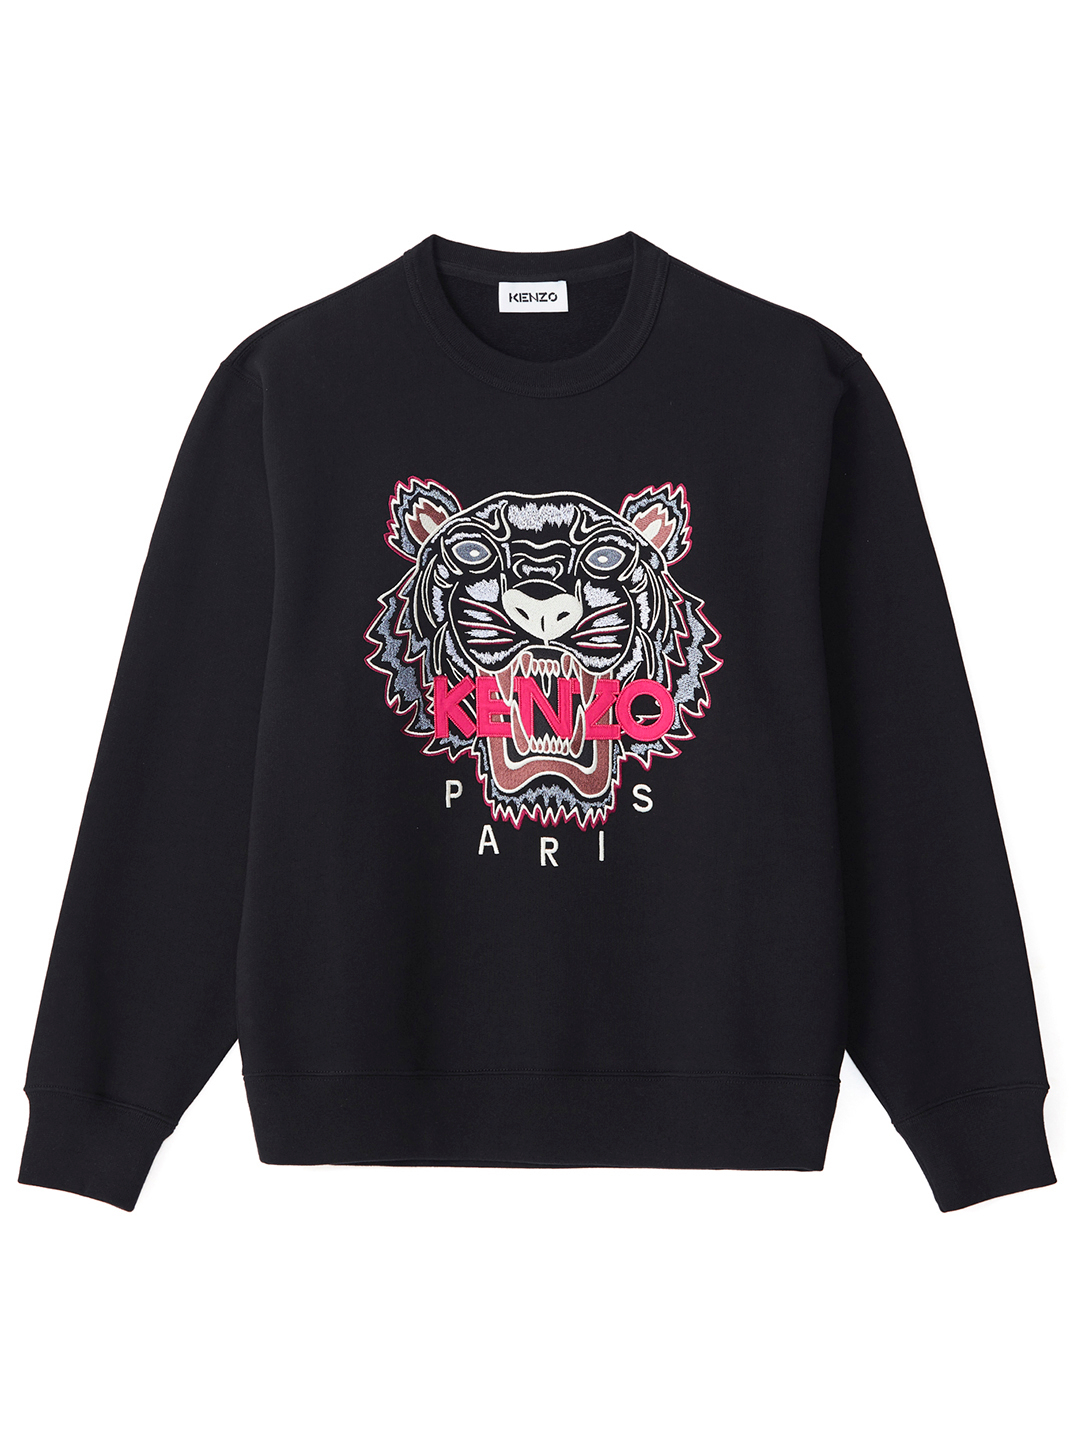 KENZO Cotton Tiger Sweatshirt Women's Black